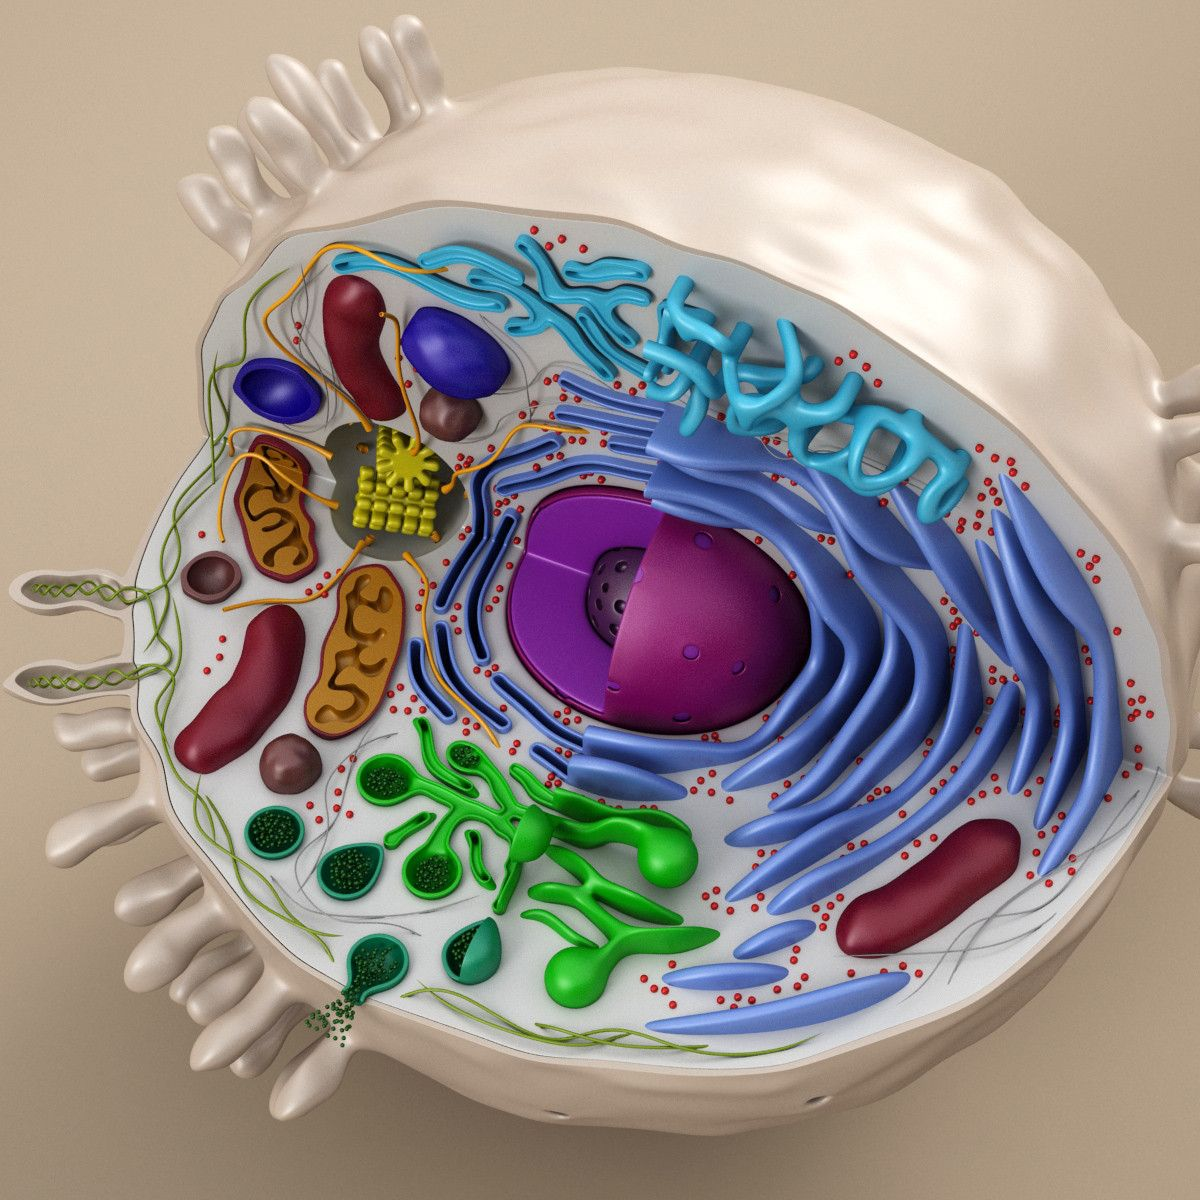 how to make 3d model of animal cell